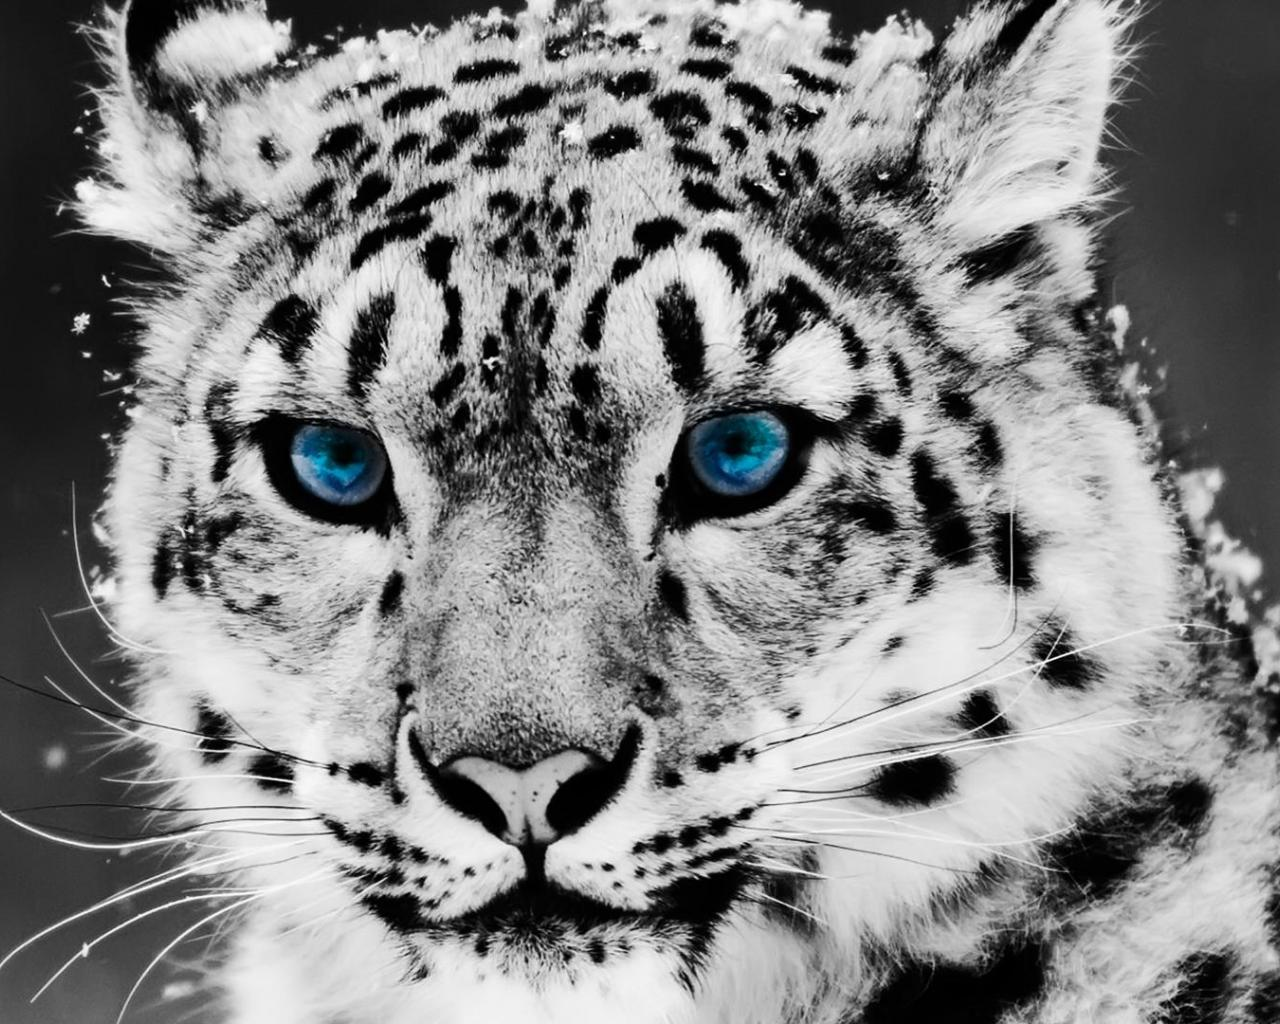 Drawn snow leopard blue eyed Blue With Snow Blue White